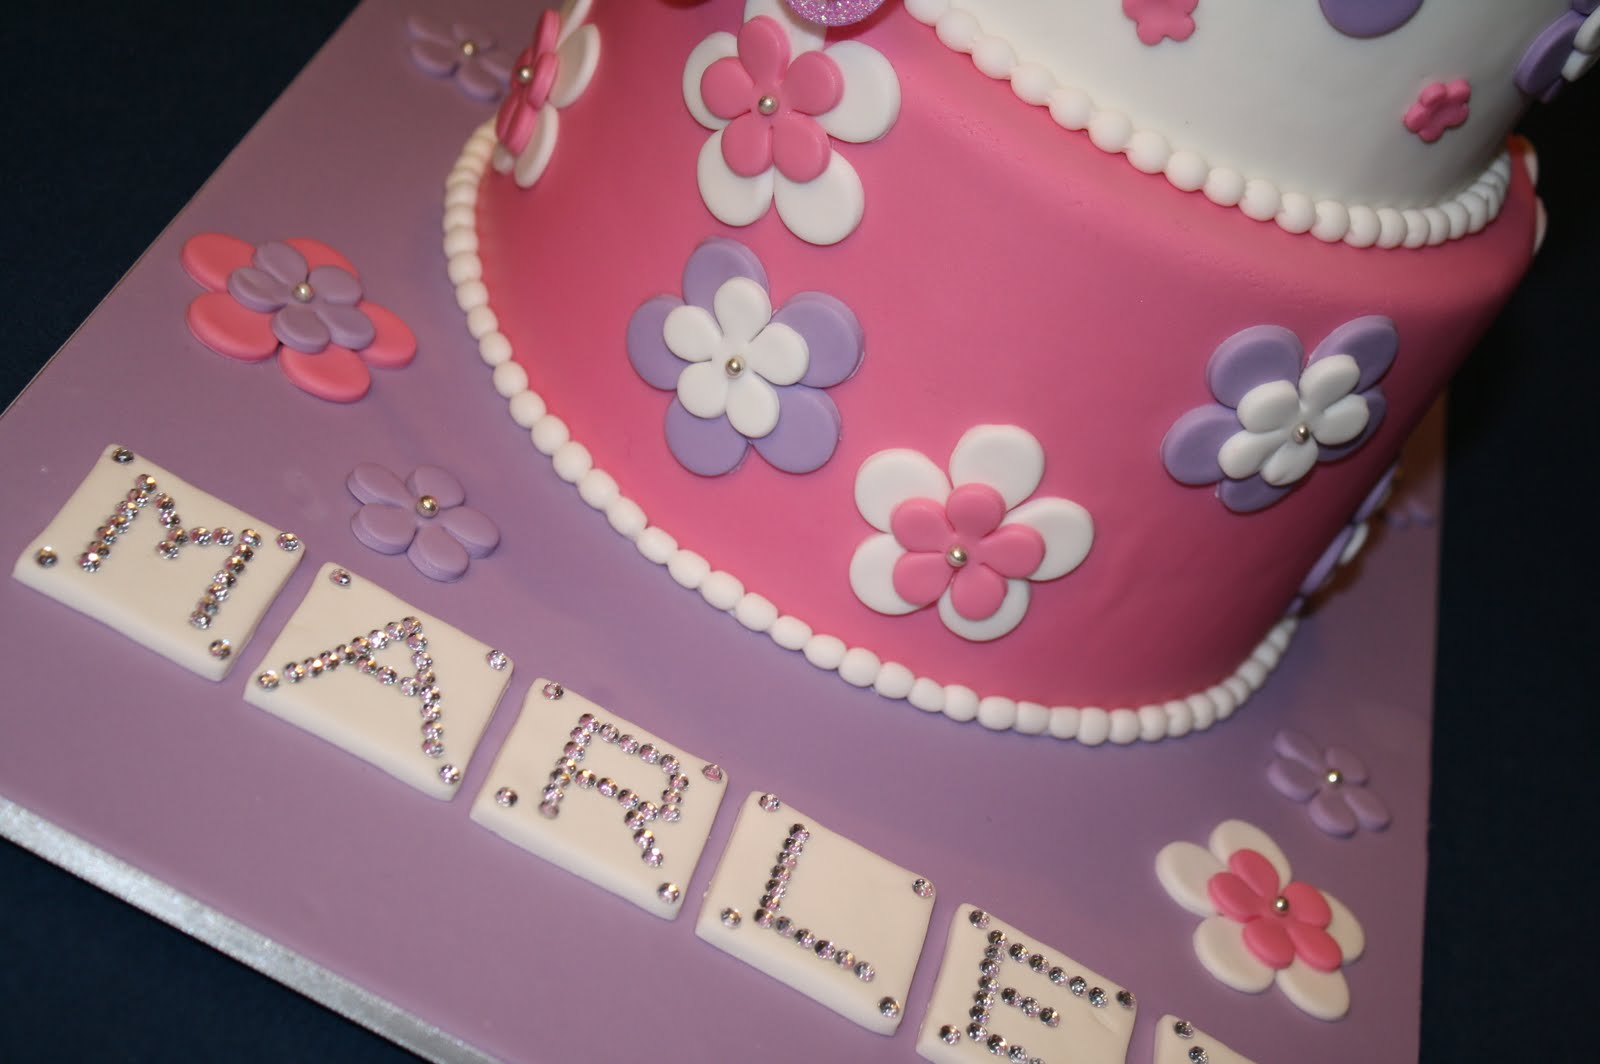 Marley S Pretty 1st Birthday Cake Posted By Sandy